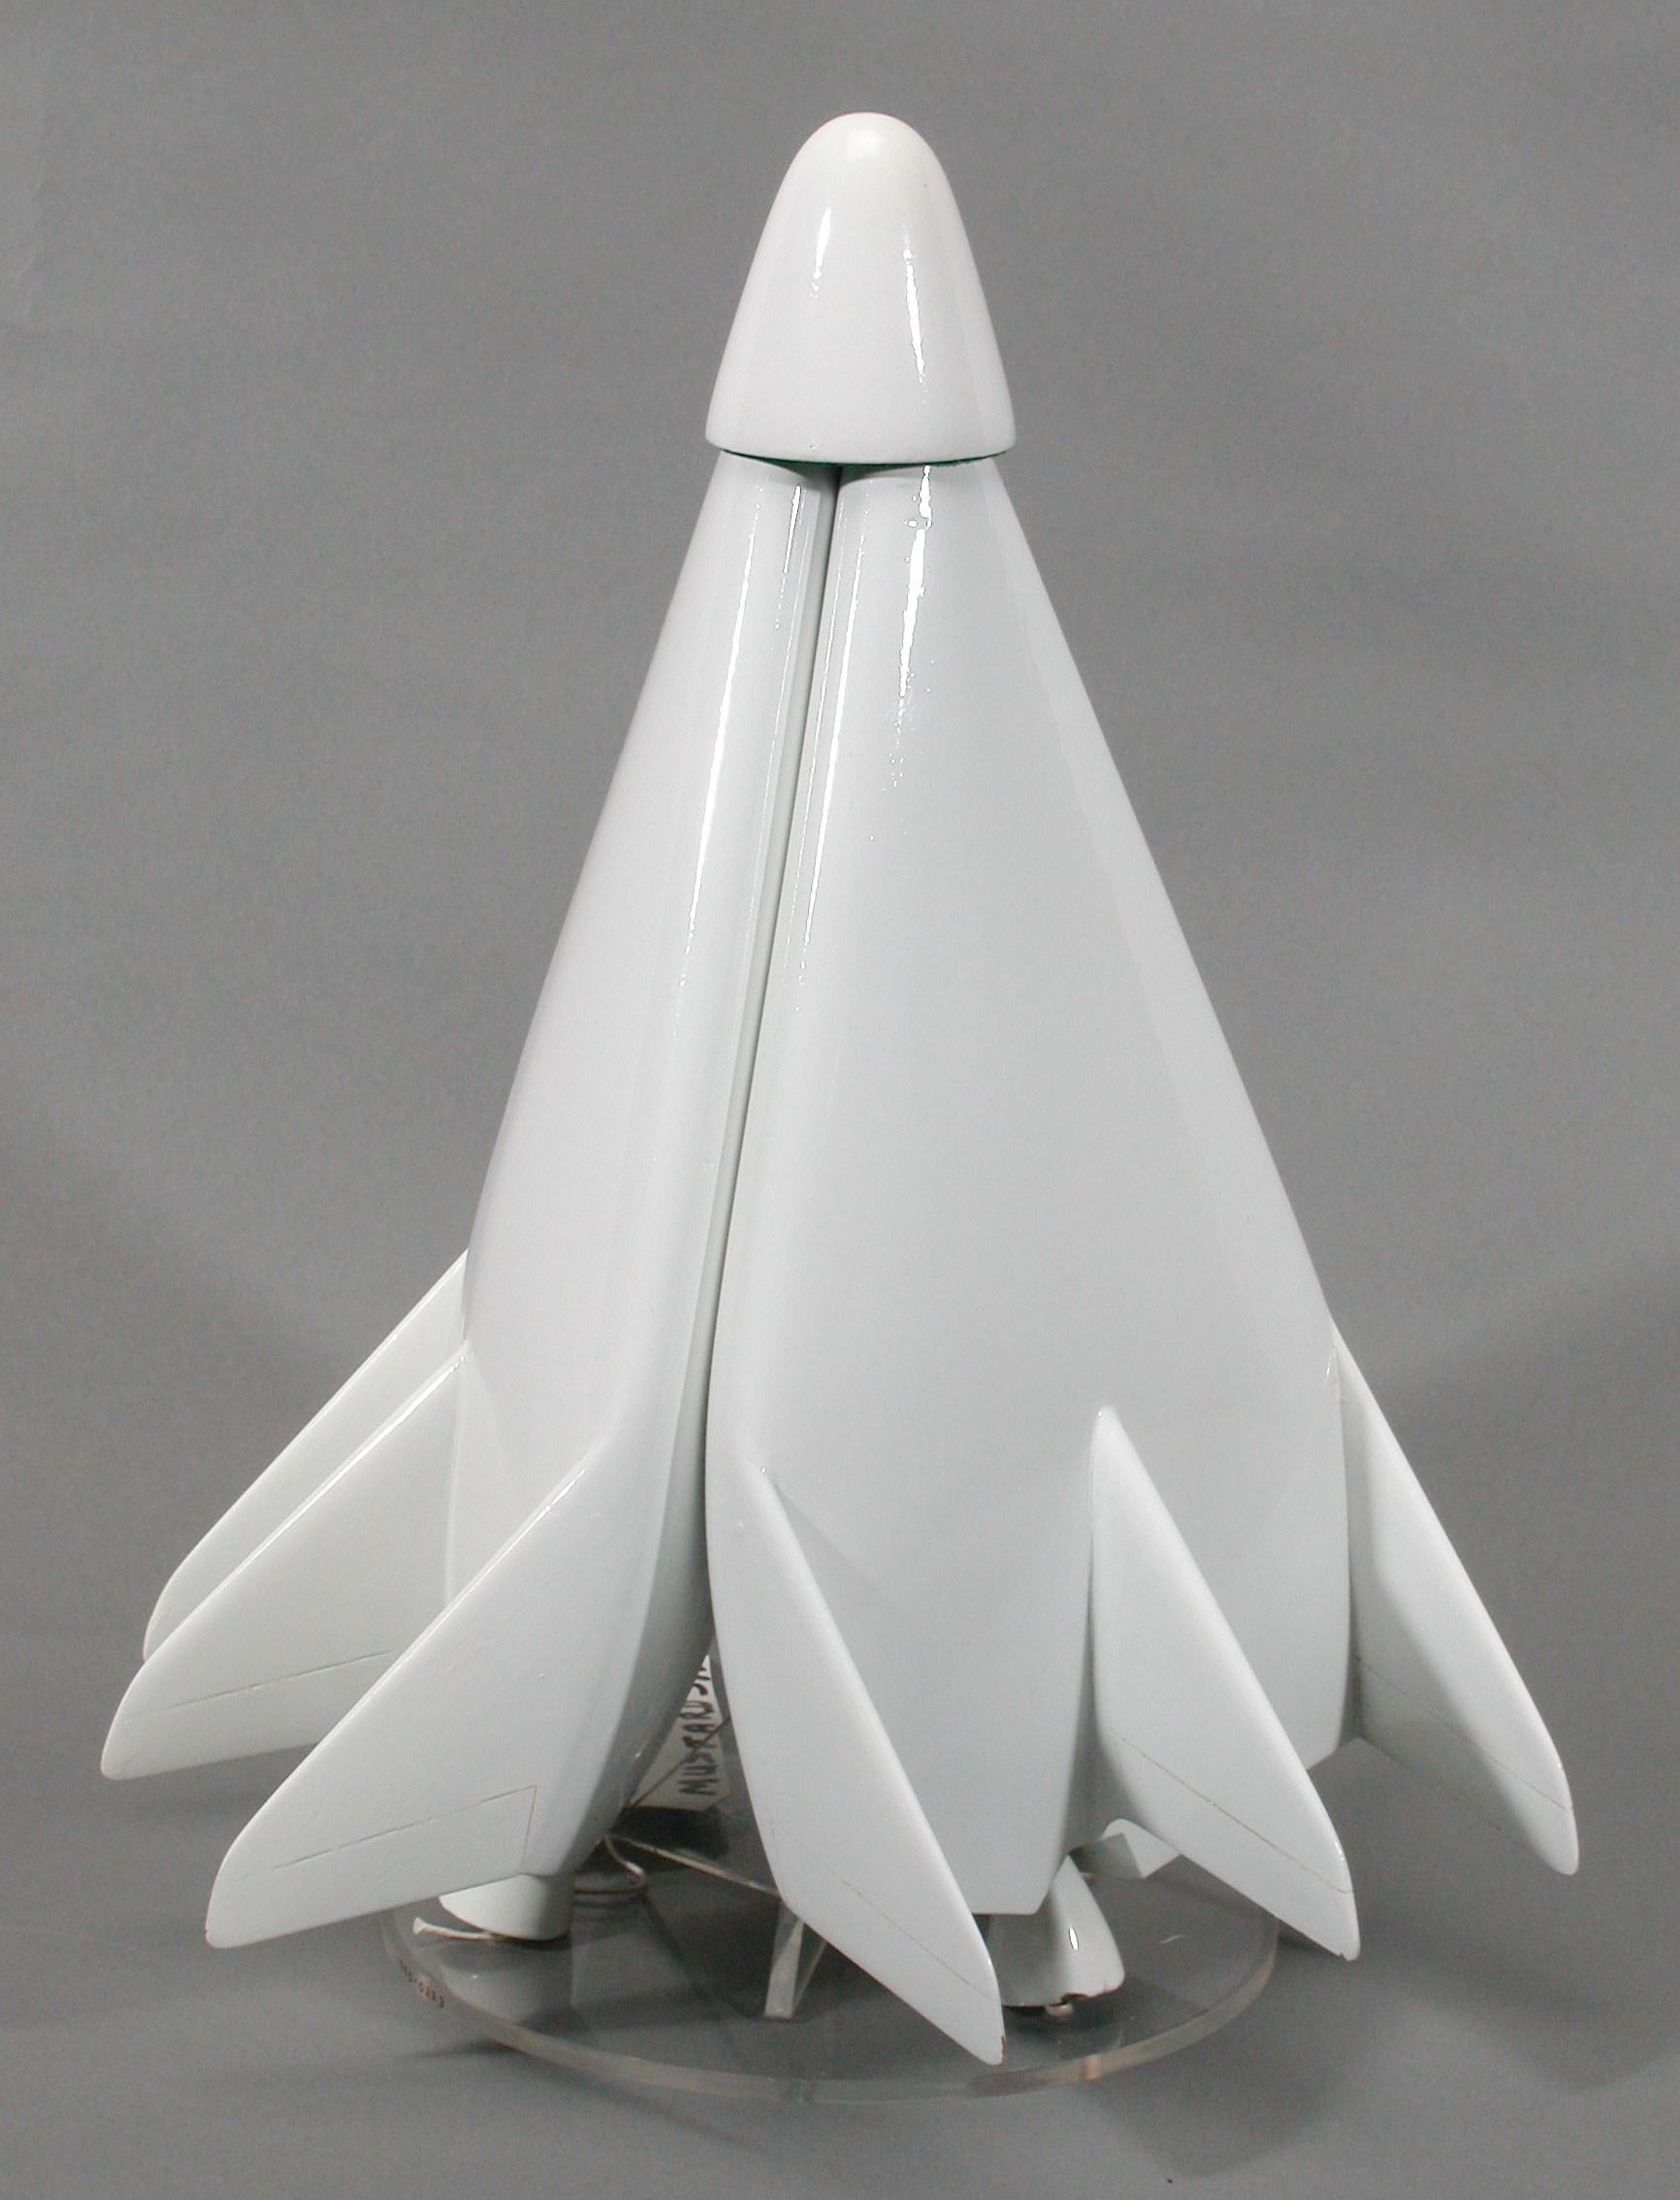 Image of : Model, Space Shuttle, British Aircraft Corporation MUSTARD Triamese Concept